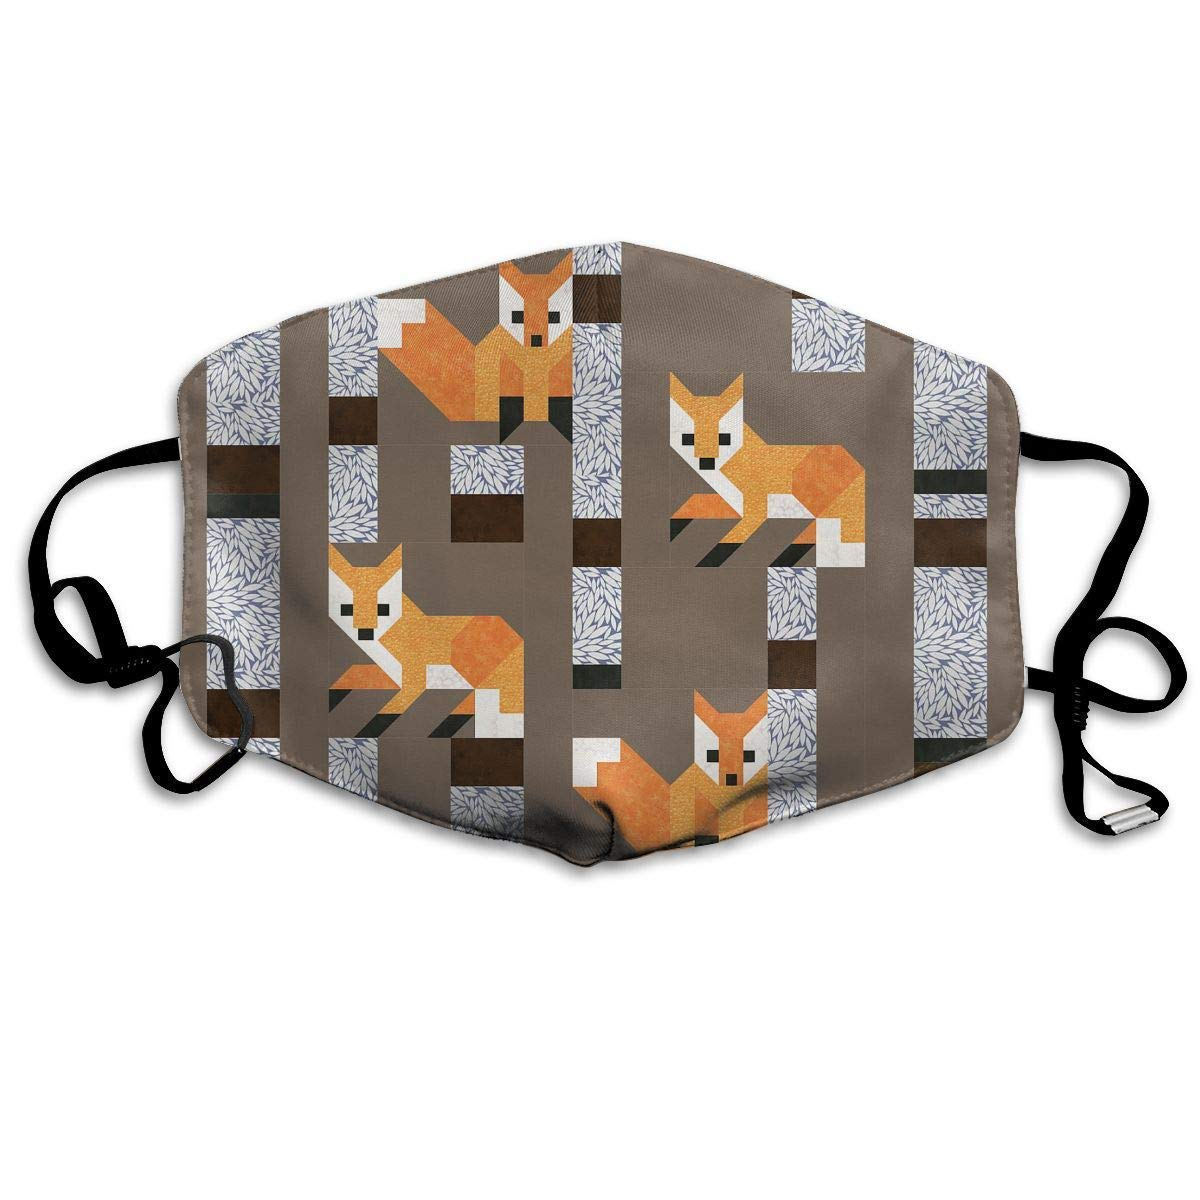 Anti-Bacterial Face Mouth Cover Mask - Windproof Reirator Fox Birches Print Earloop Mask